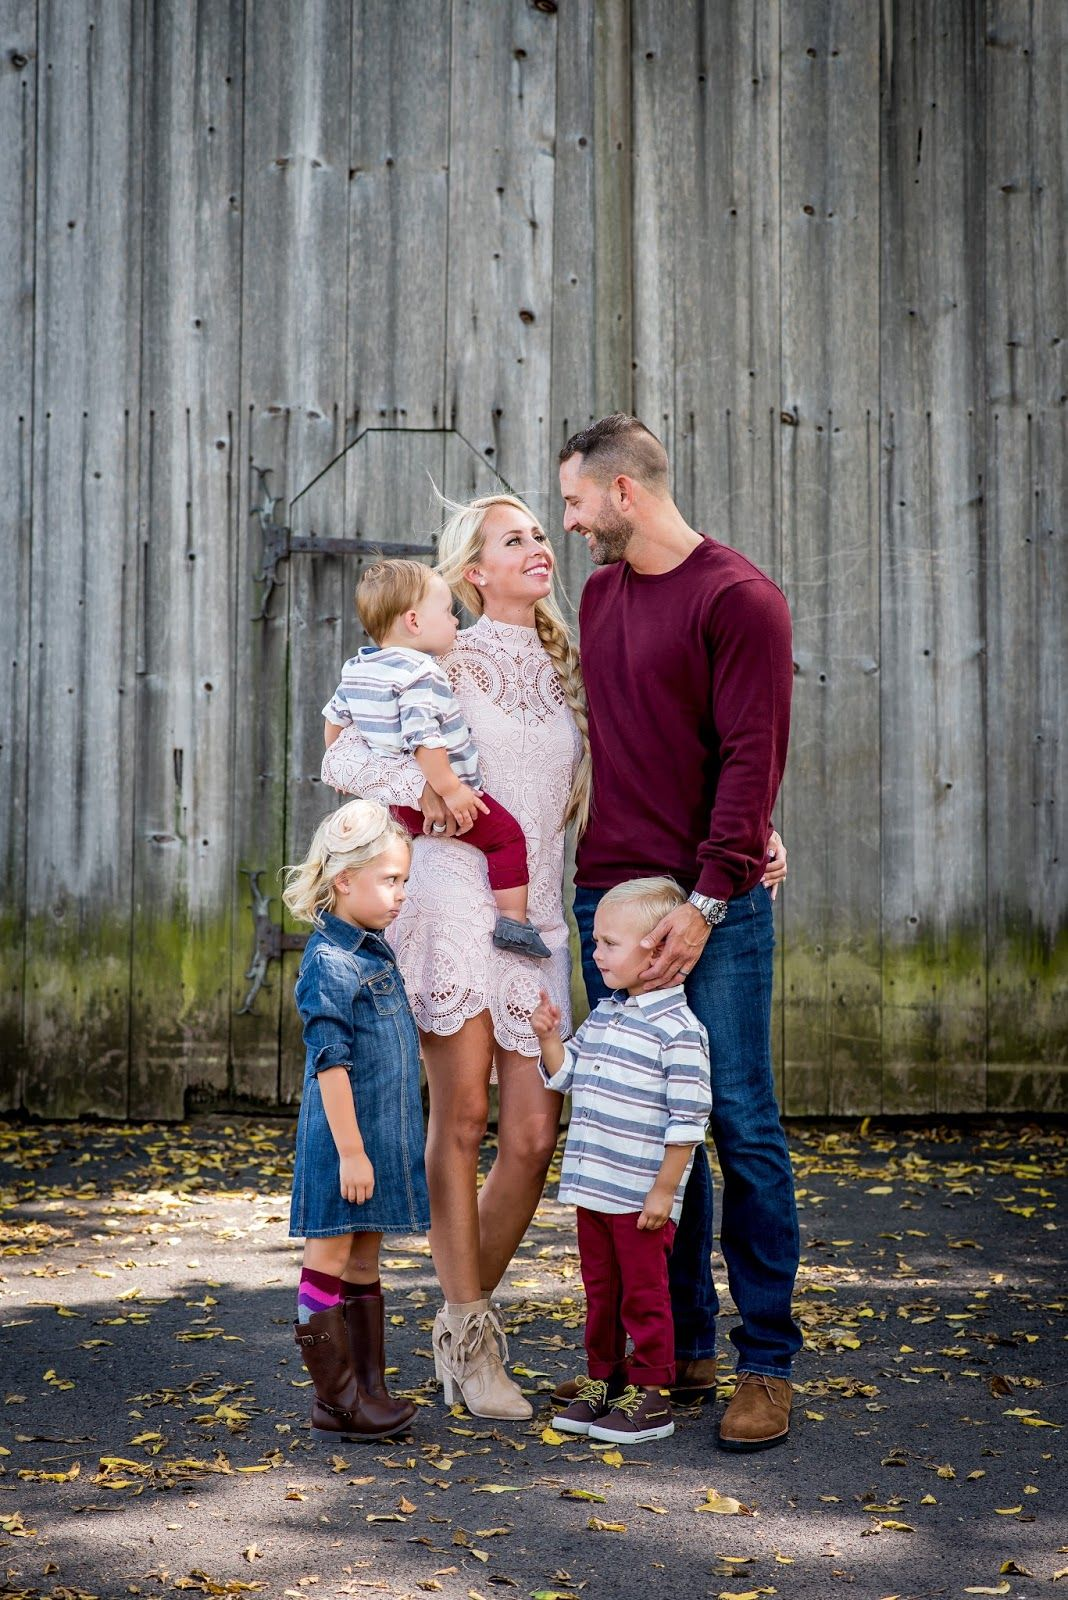 Fall Family Photos 2016: How to Coordinate Outfits